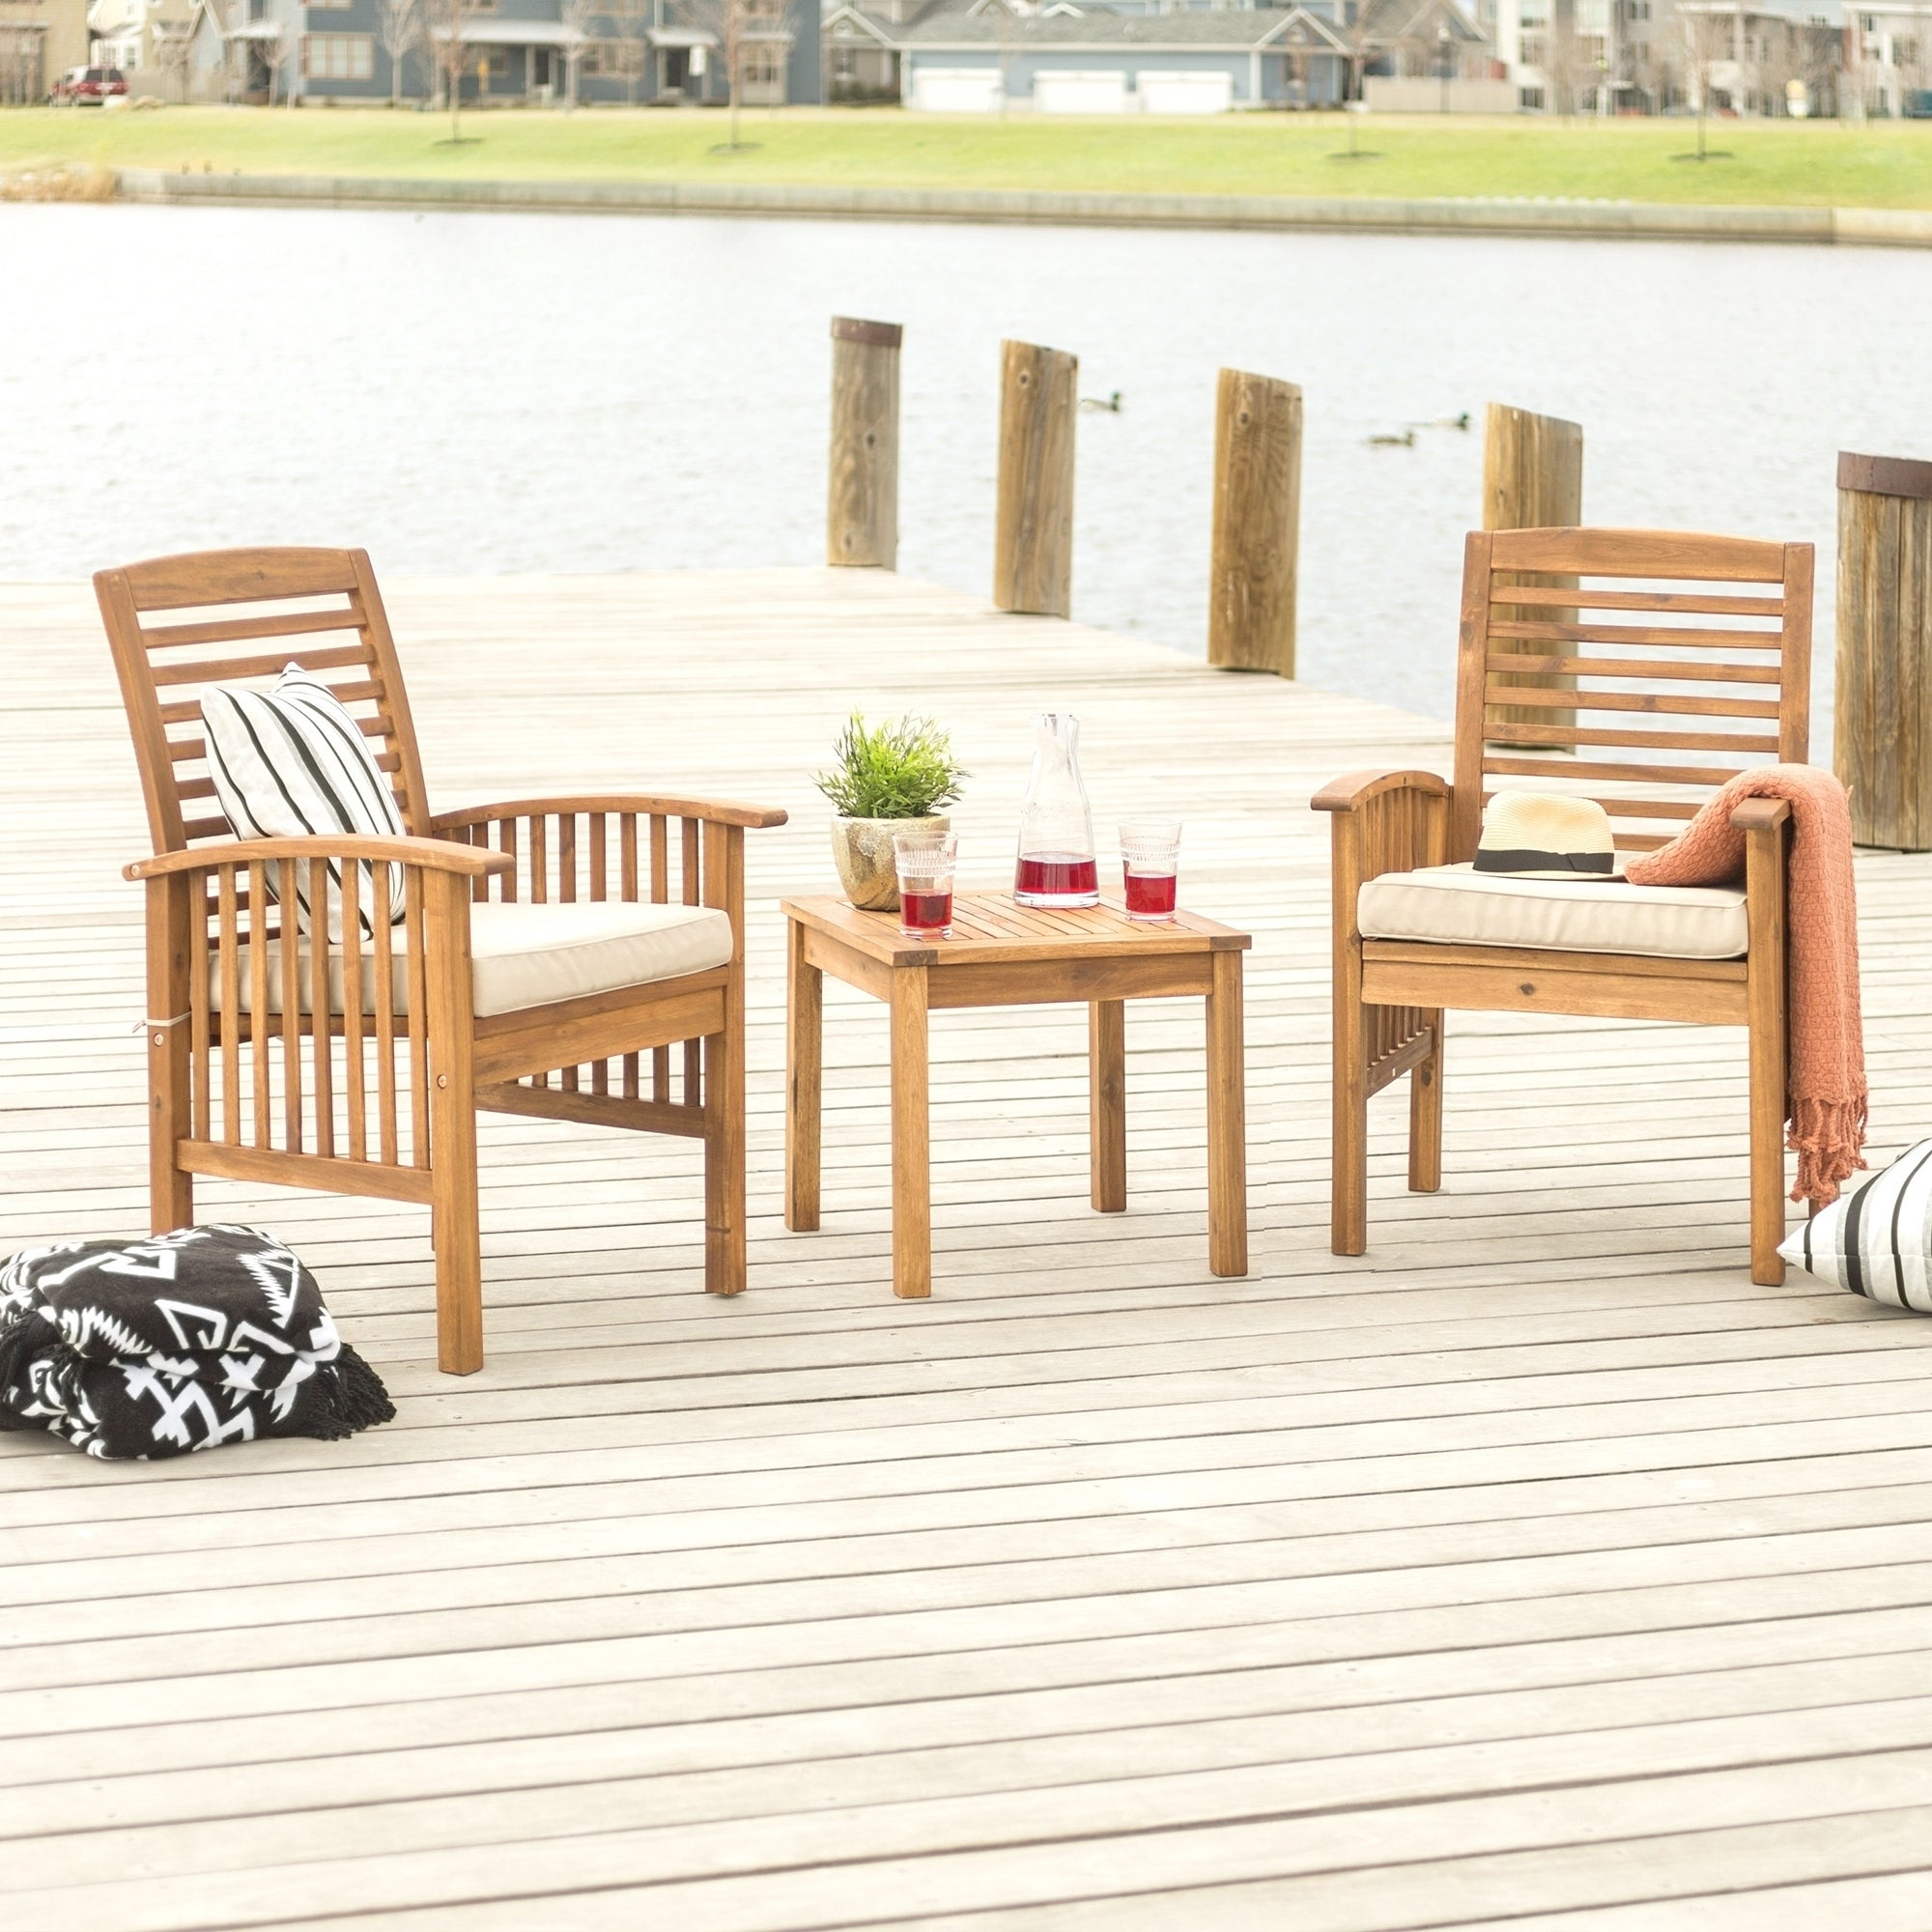 Havenside Home Surfside Outdoor Lounge Chairs For Most Up To Date Havenside Home Surfside 3 Piece Acacia Outdoor Chairs And Side Table Set (View 13 of 25)